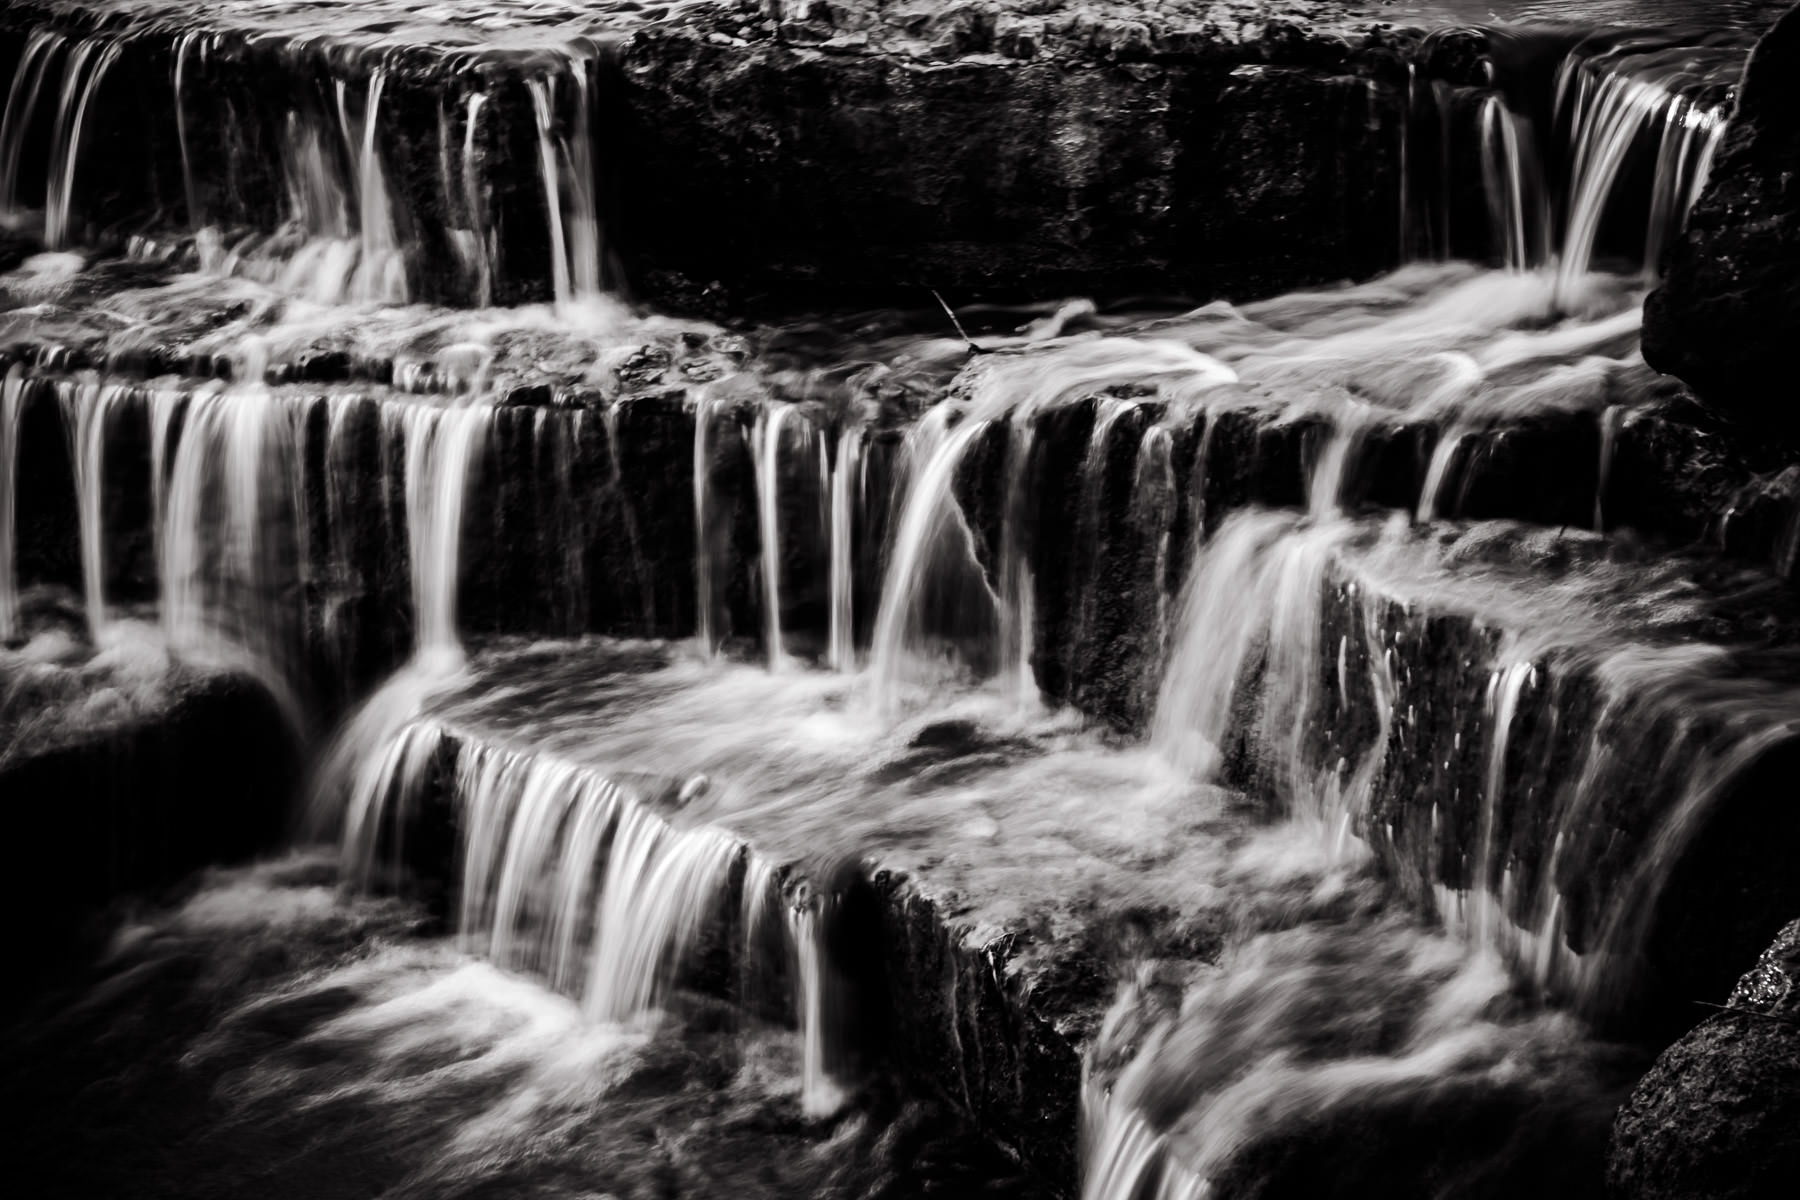 Water pours over rocks at a small waterfall in Frisco, Texas' Hall Office Park.